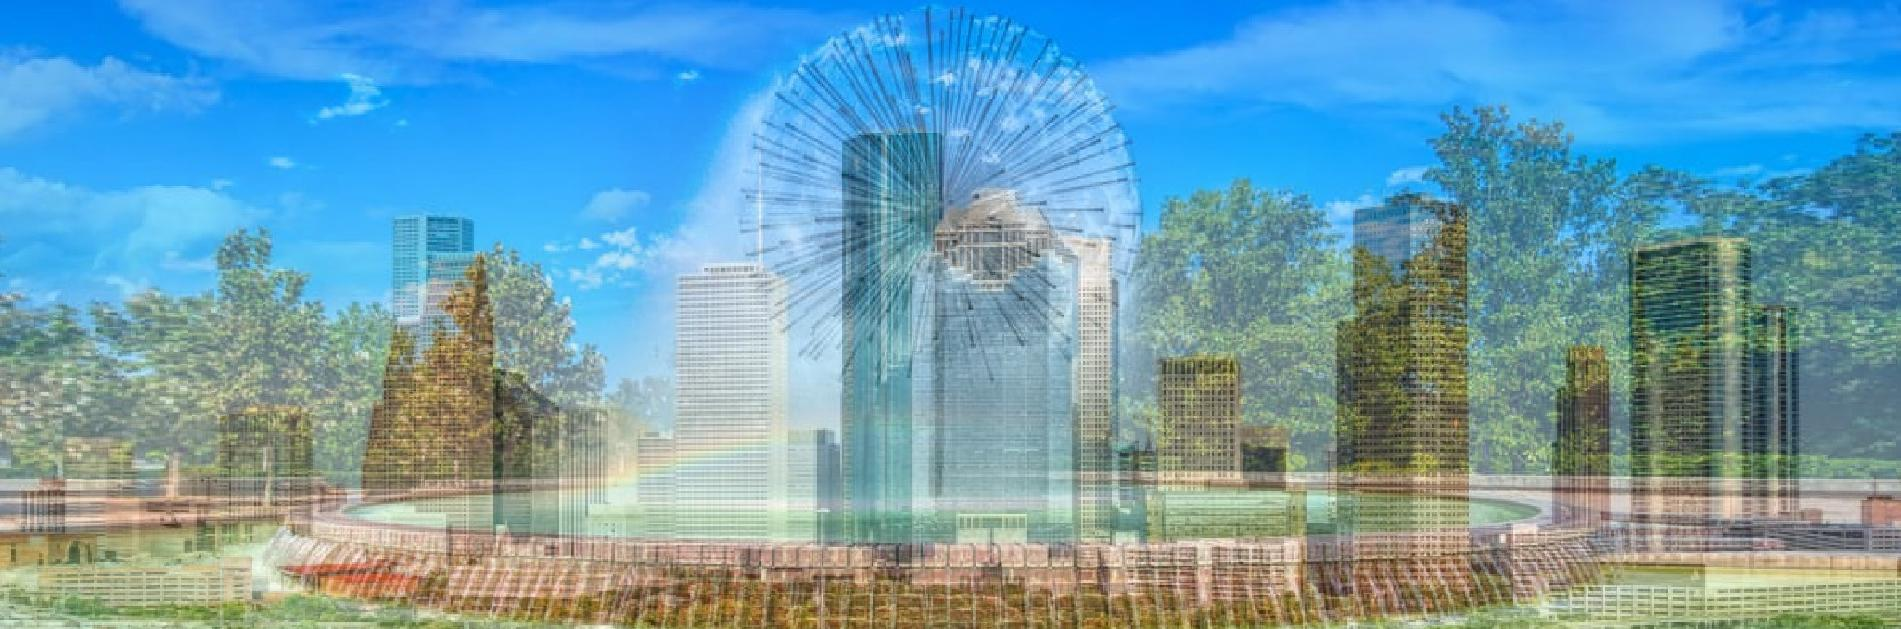 Houston Skyline with the Dandelion Fountain located on Allen Parkway